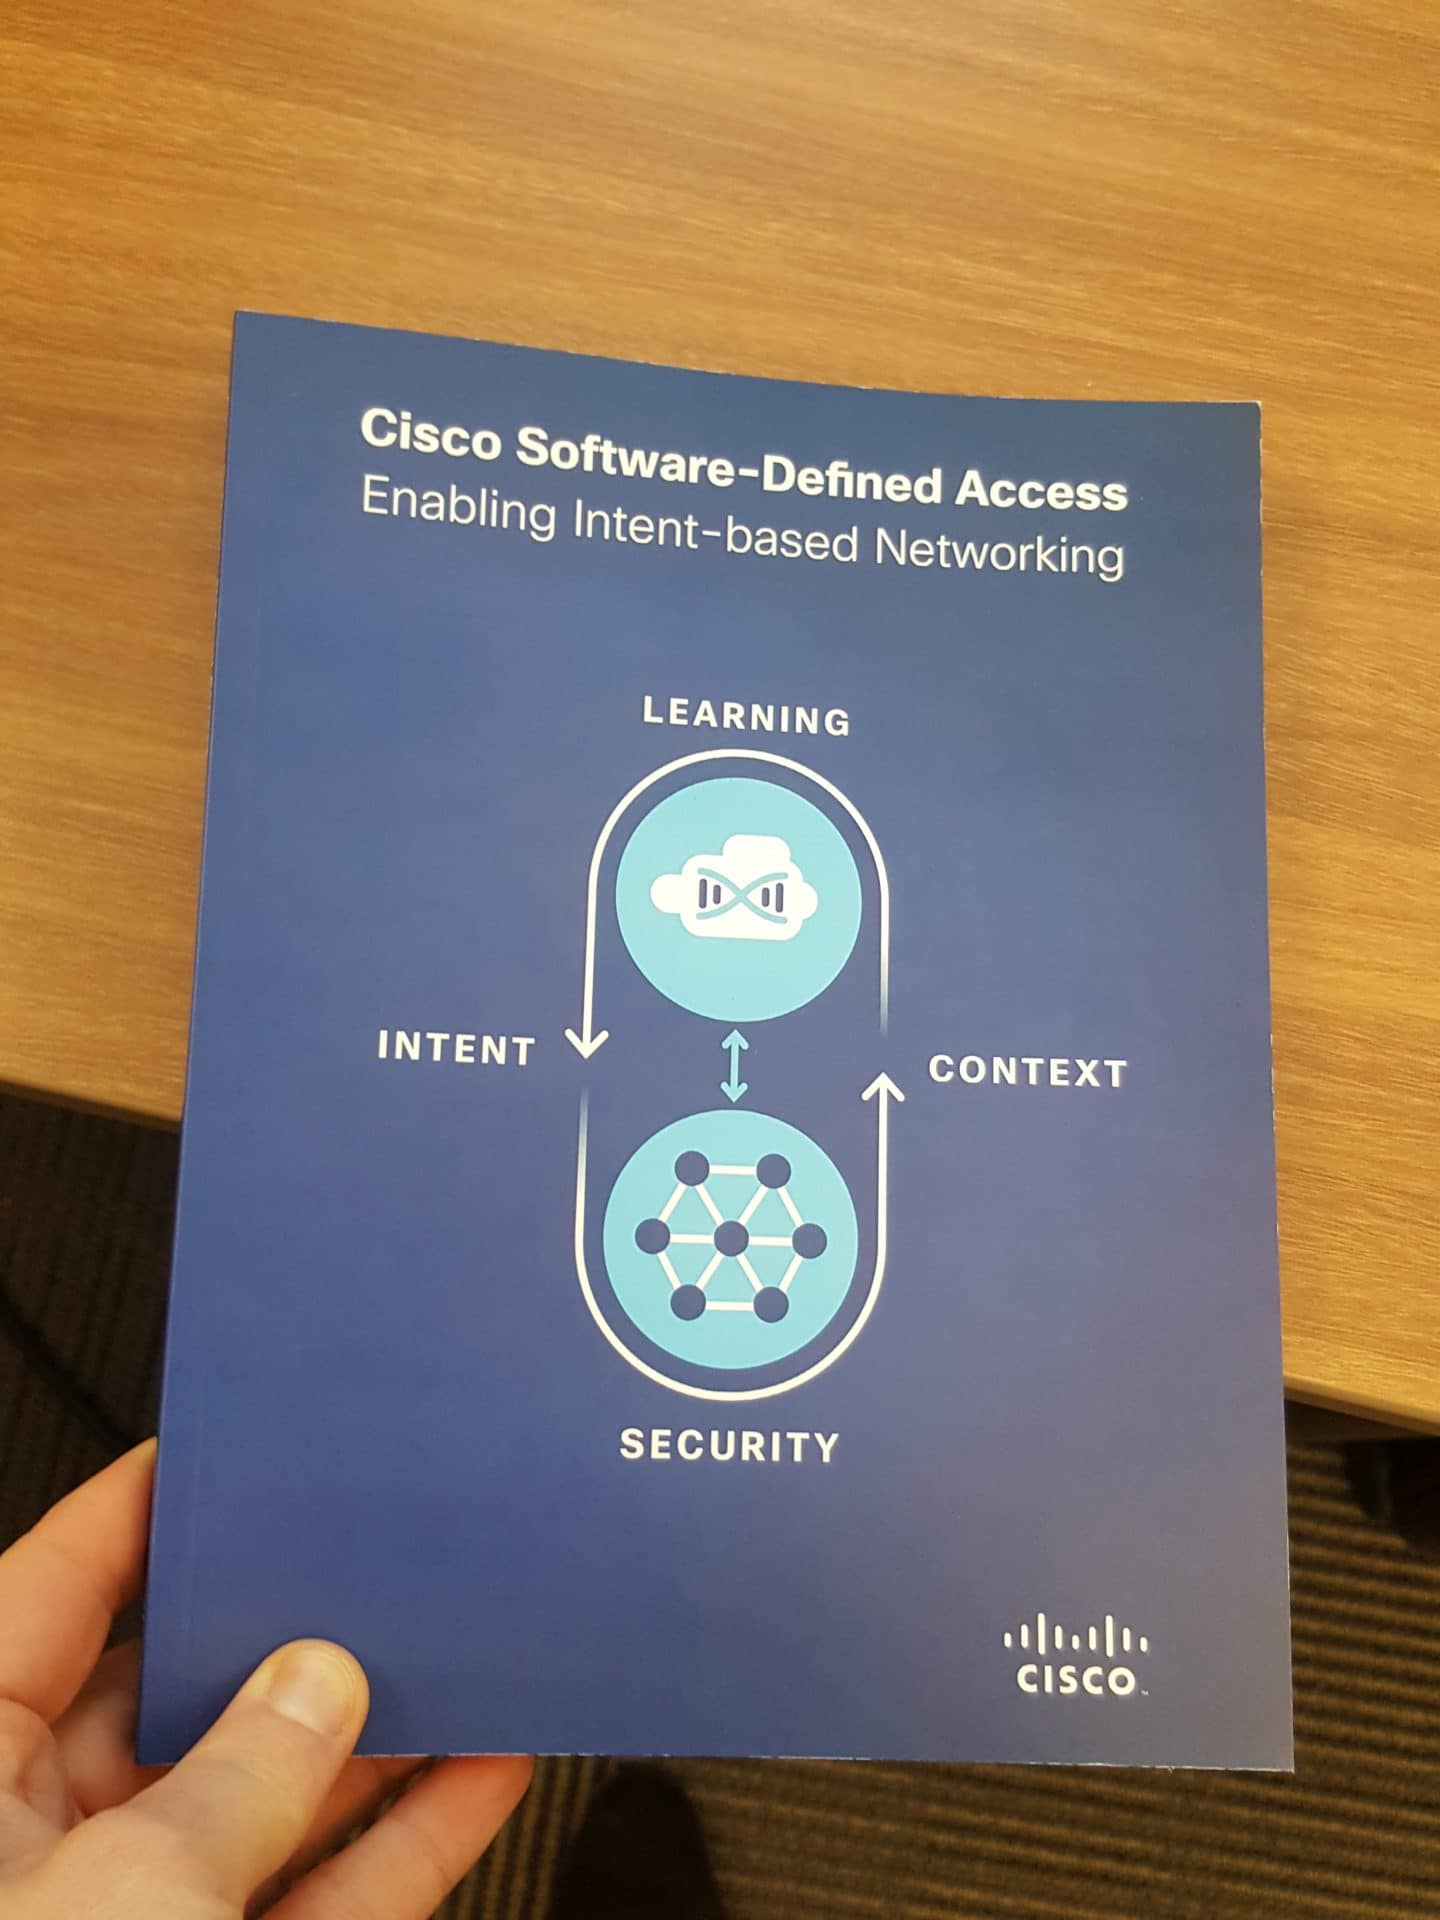 A Guide For The Cisco Catalyst 9000 Family Book Sprints